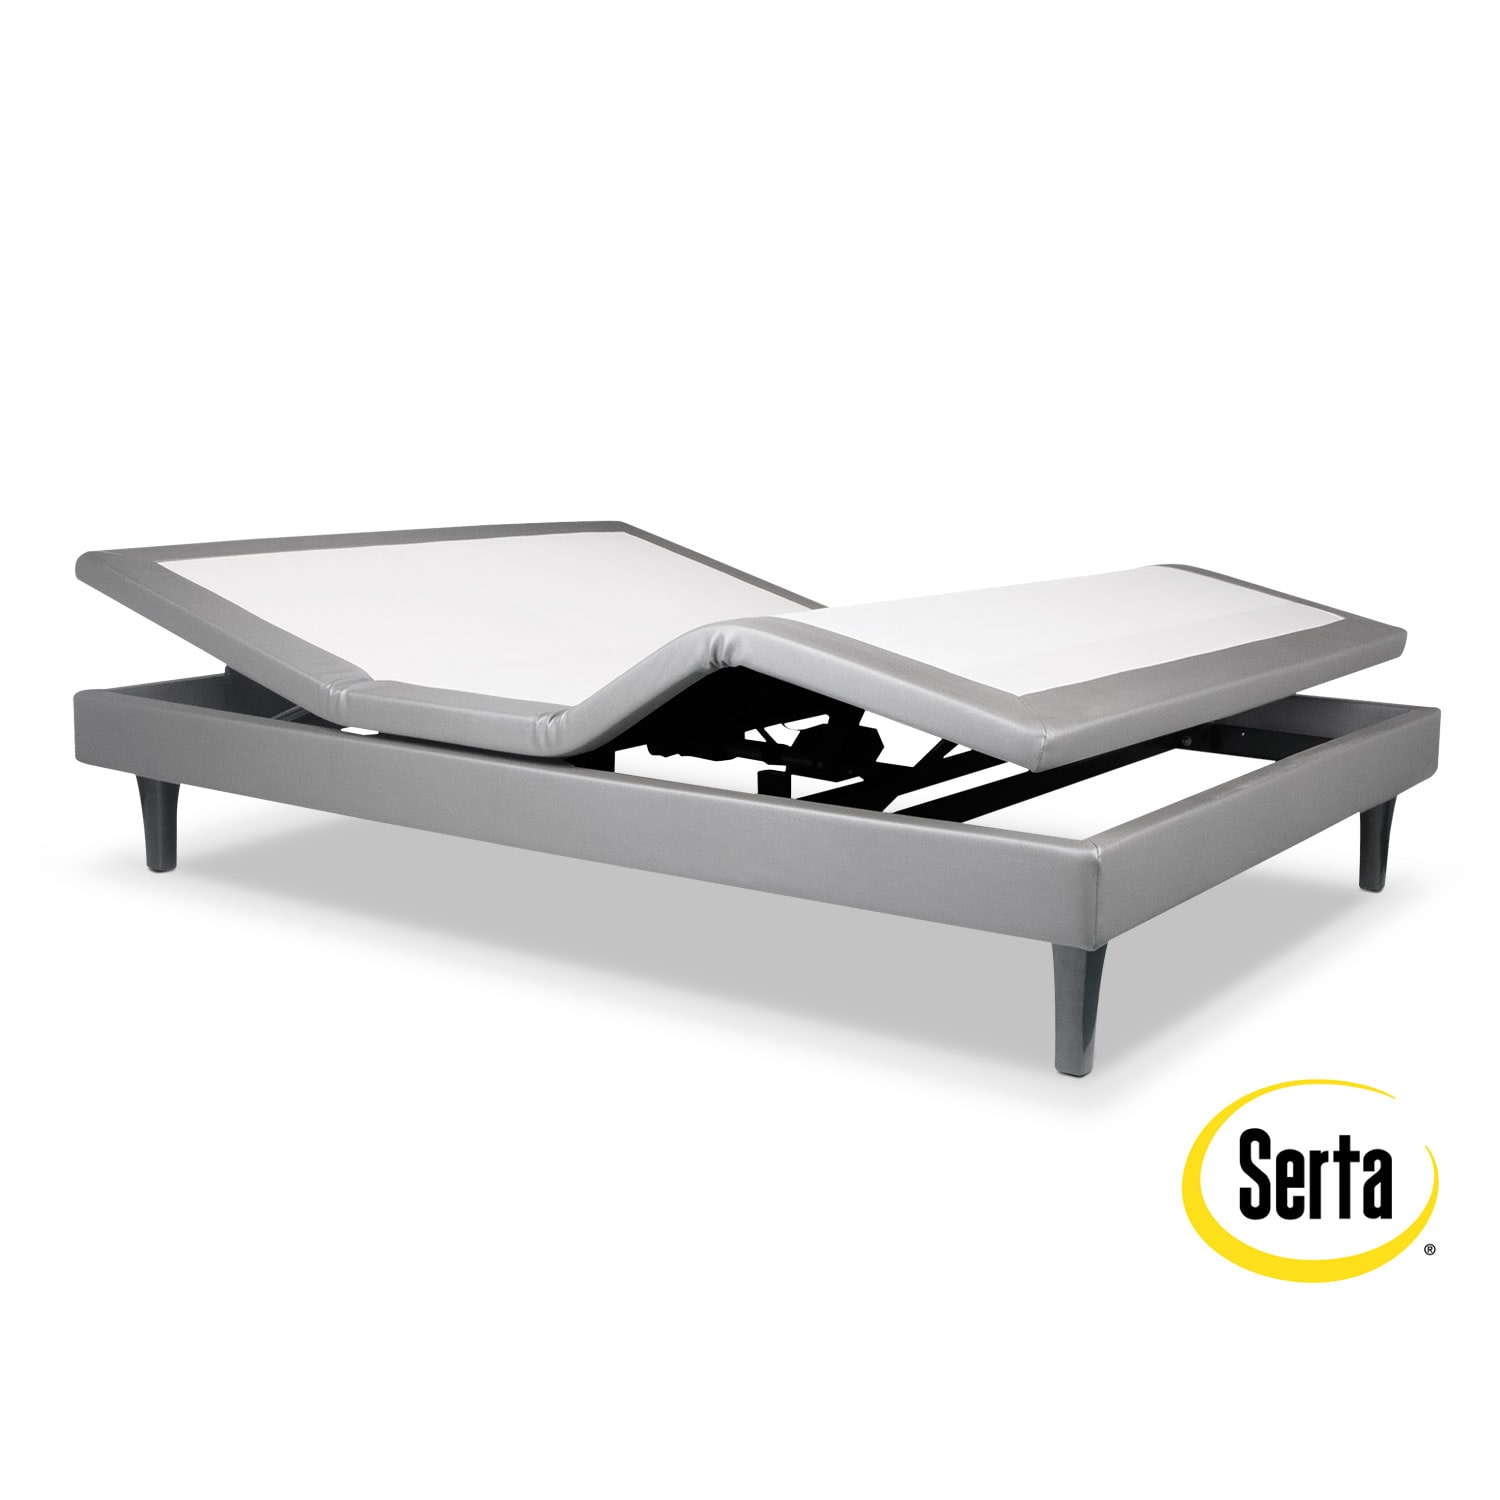 Mattresses and Bedding - Serta Motion Perfect III Queen Adjustable Base